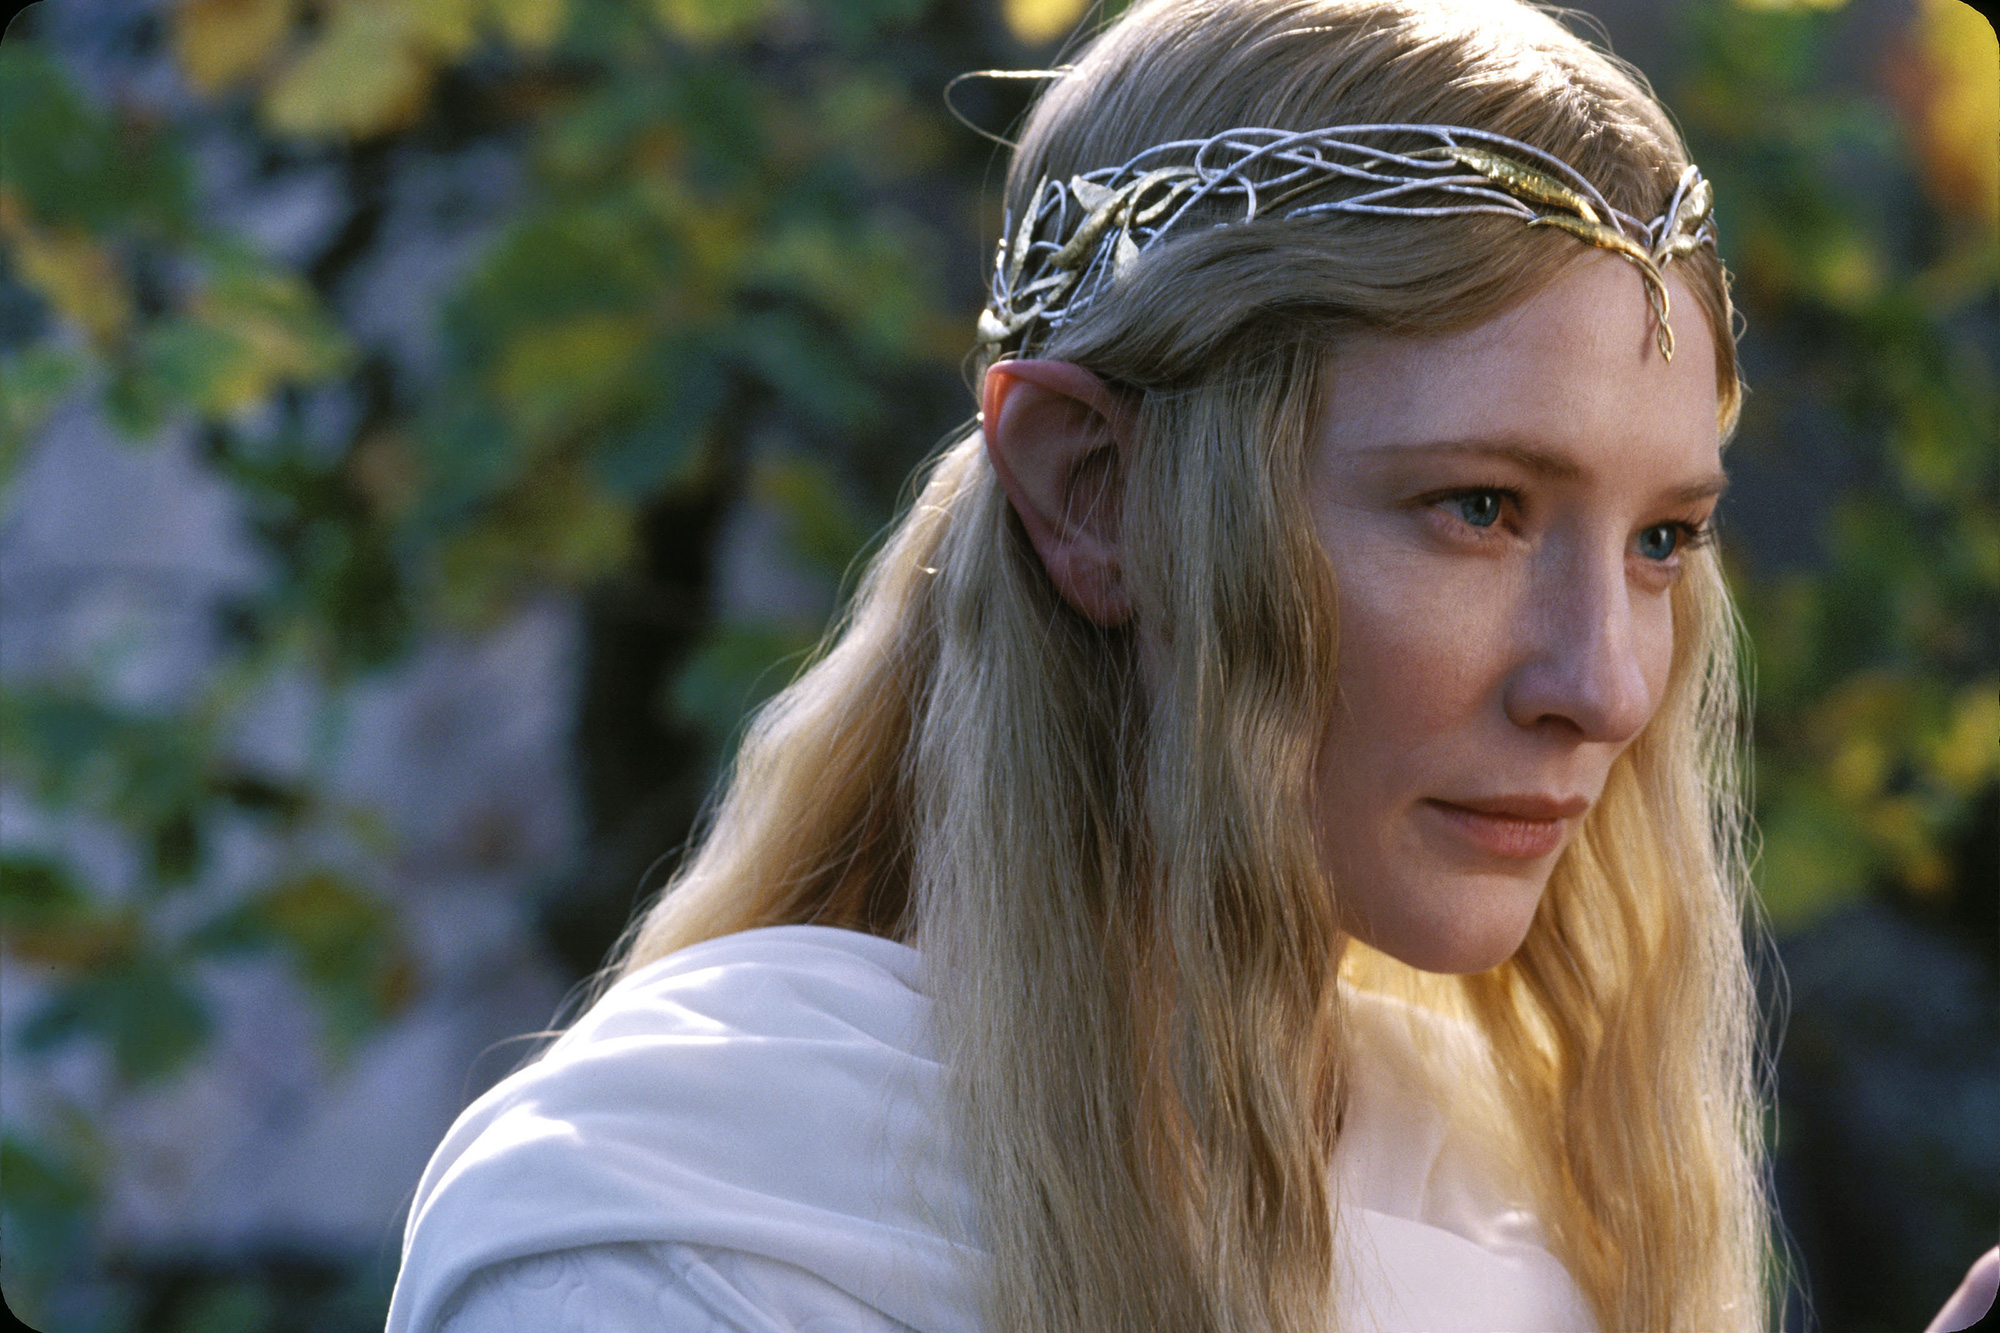 The Lord Of The Rings: The Fellowship Of The Ring, Cate Blanchett